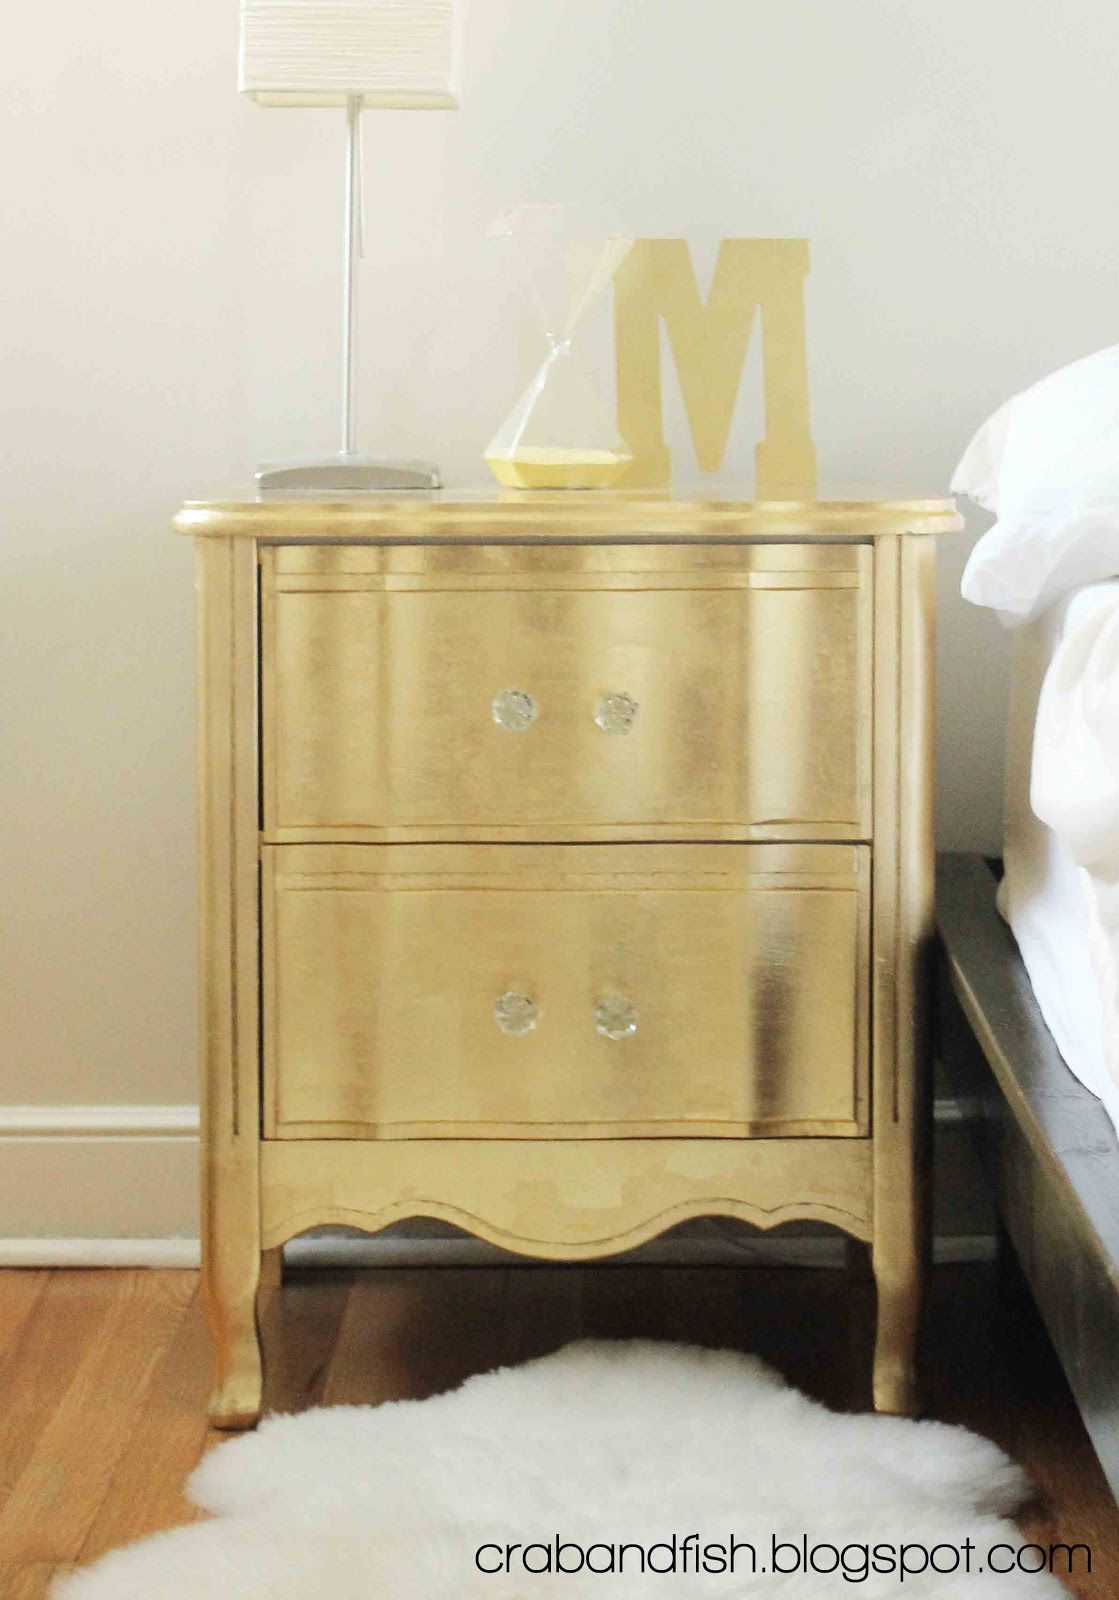 diy gilded nightstand crab fish this makes me want to guild all knockoff decor a website filled with knockoff diys of products at stores like anthropologie ballard design crate barrel land of nod pier pottery barn